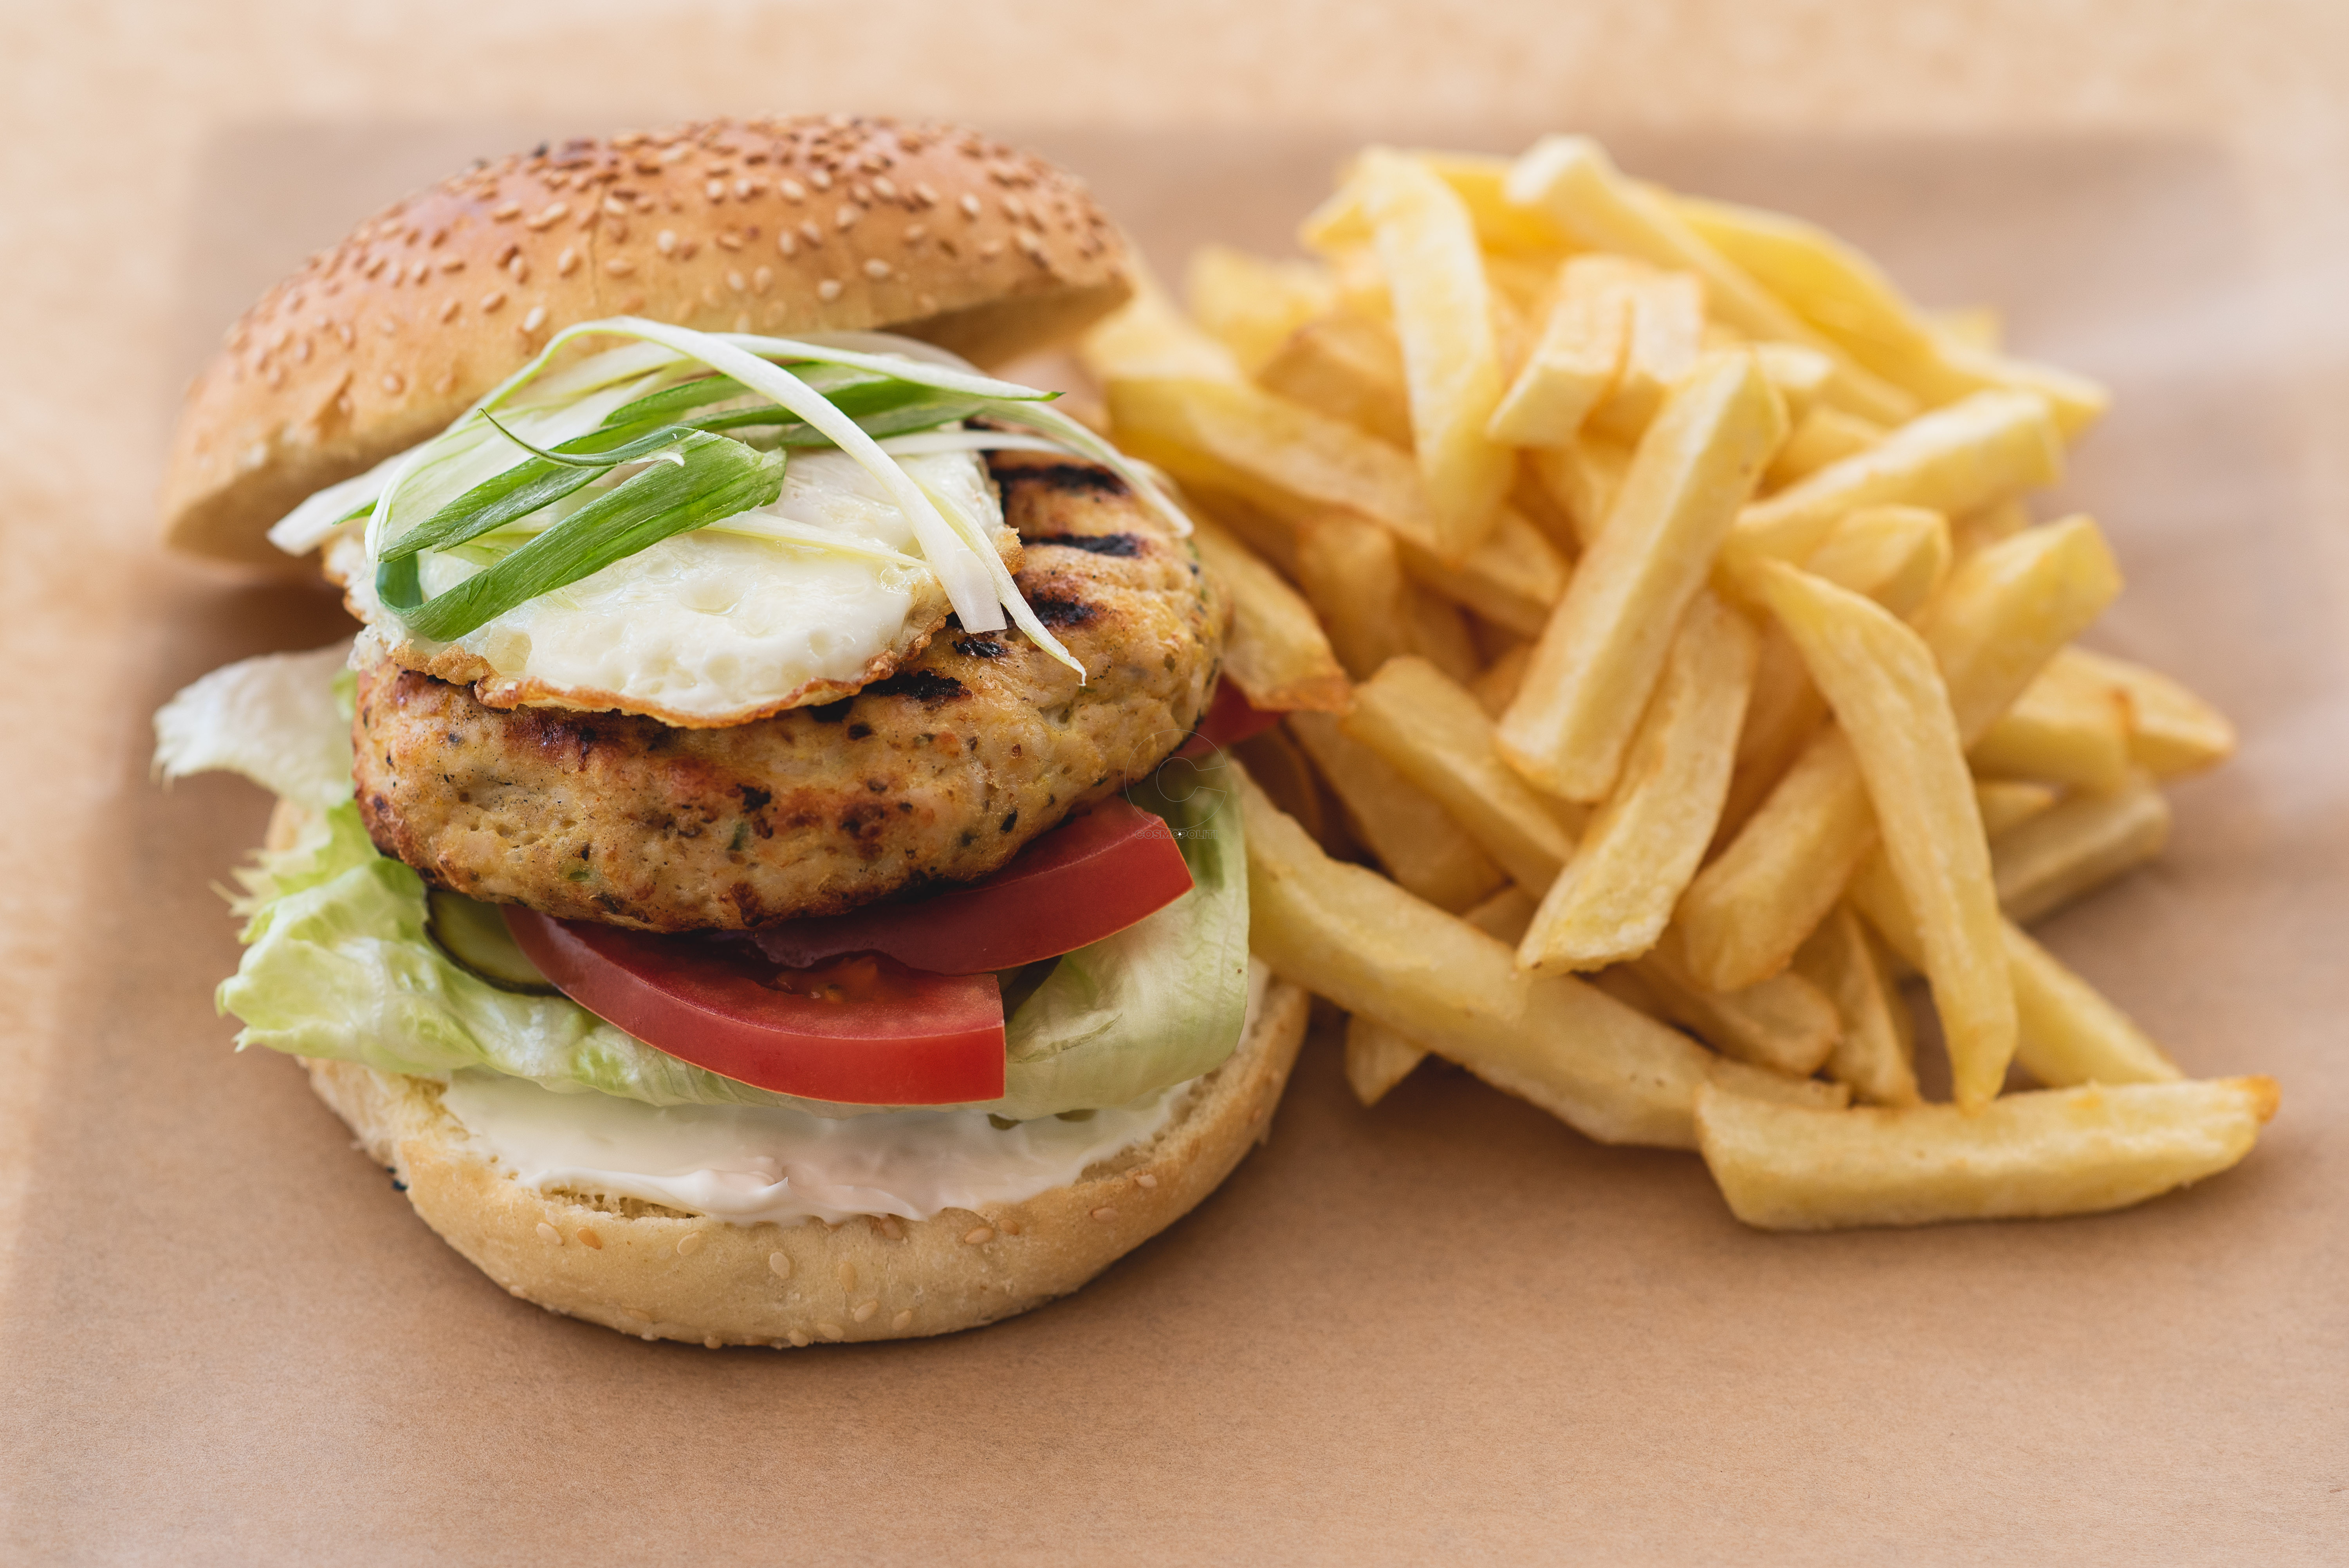 Turkey Burger with Fried Egg